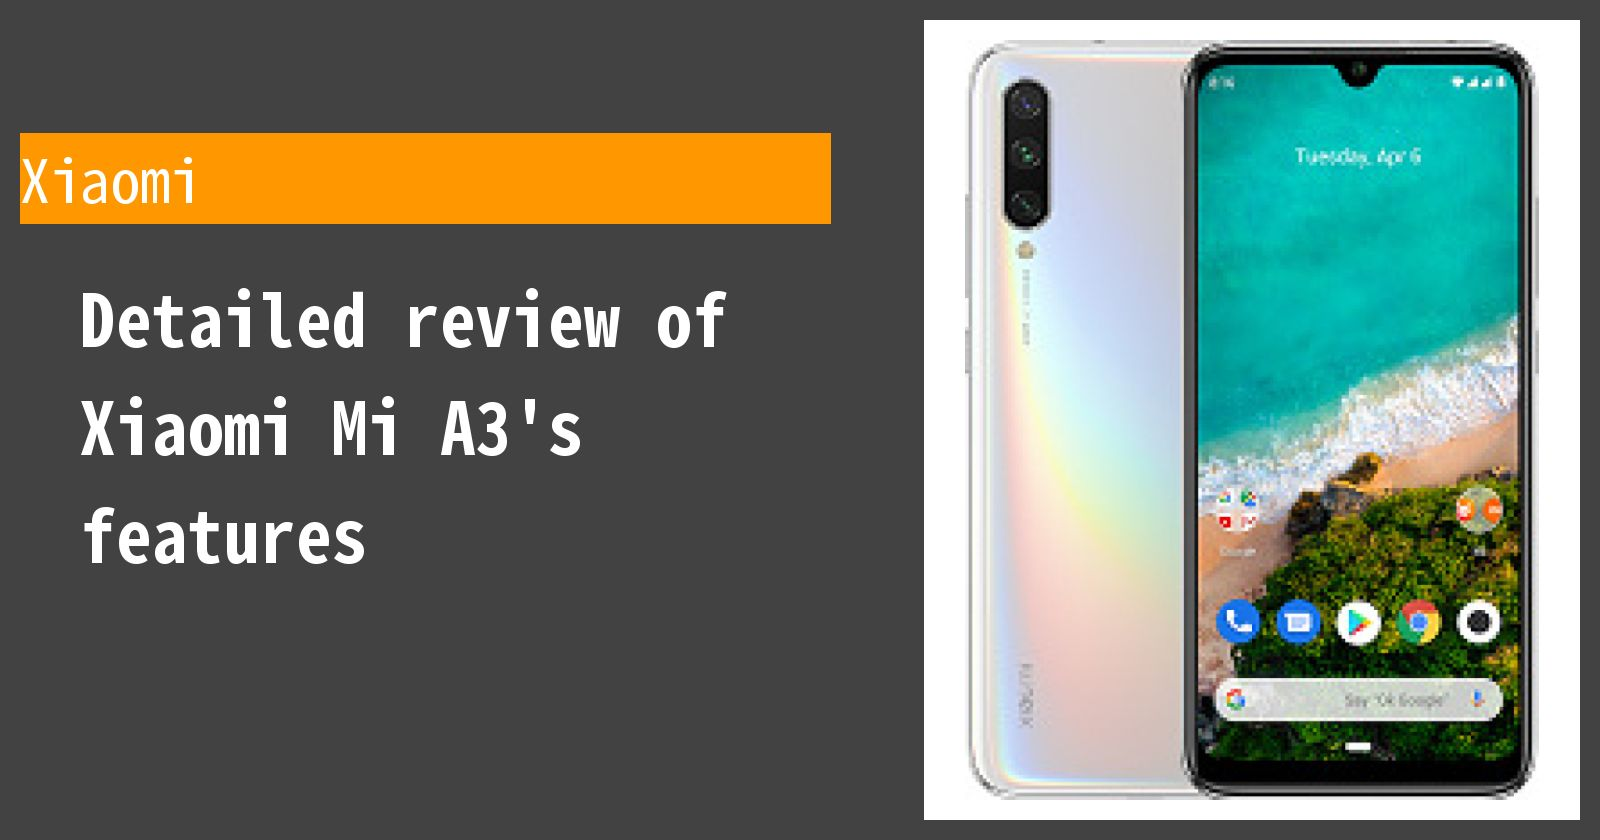 Detailed review of Xiaomi Mi A3's features